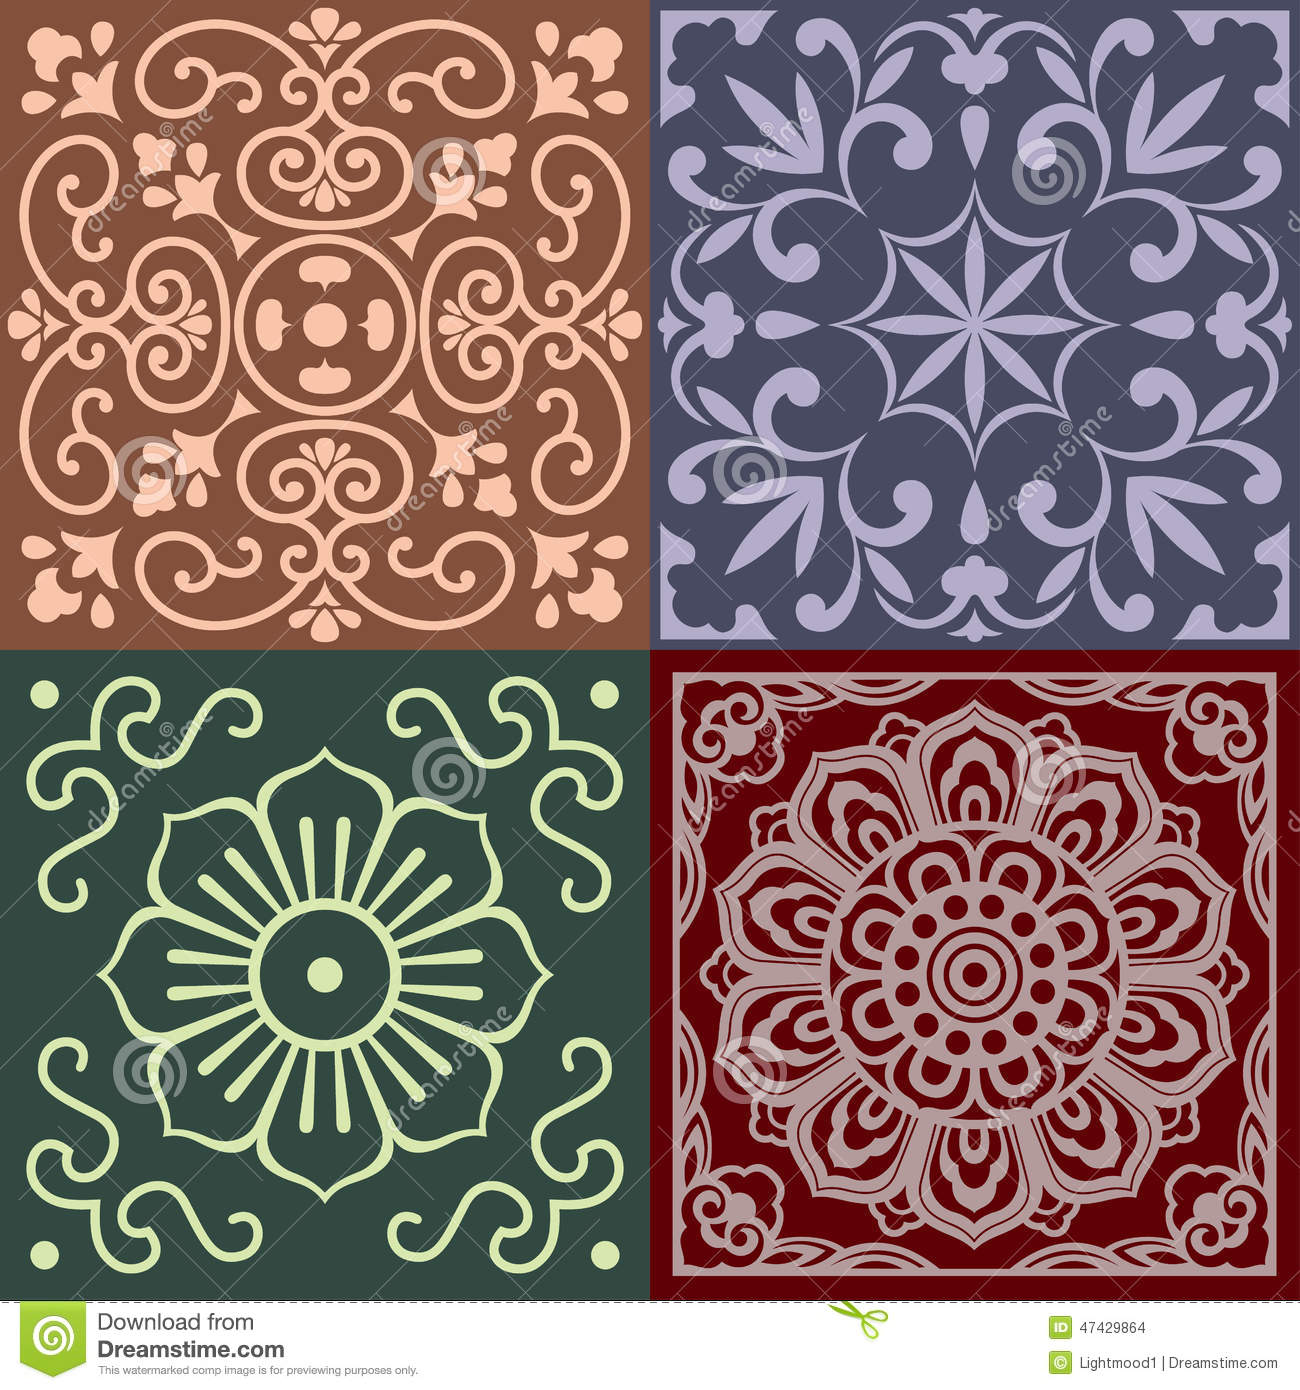 Traditional China Patterns patterns of china traditional style stock vector - image: 47429864